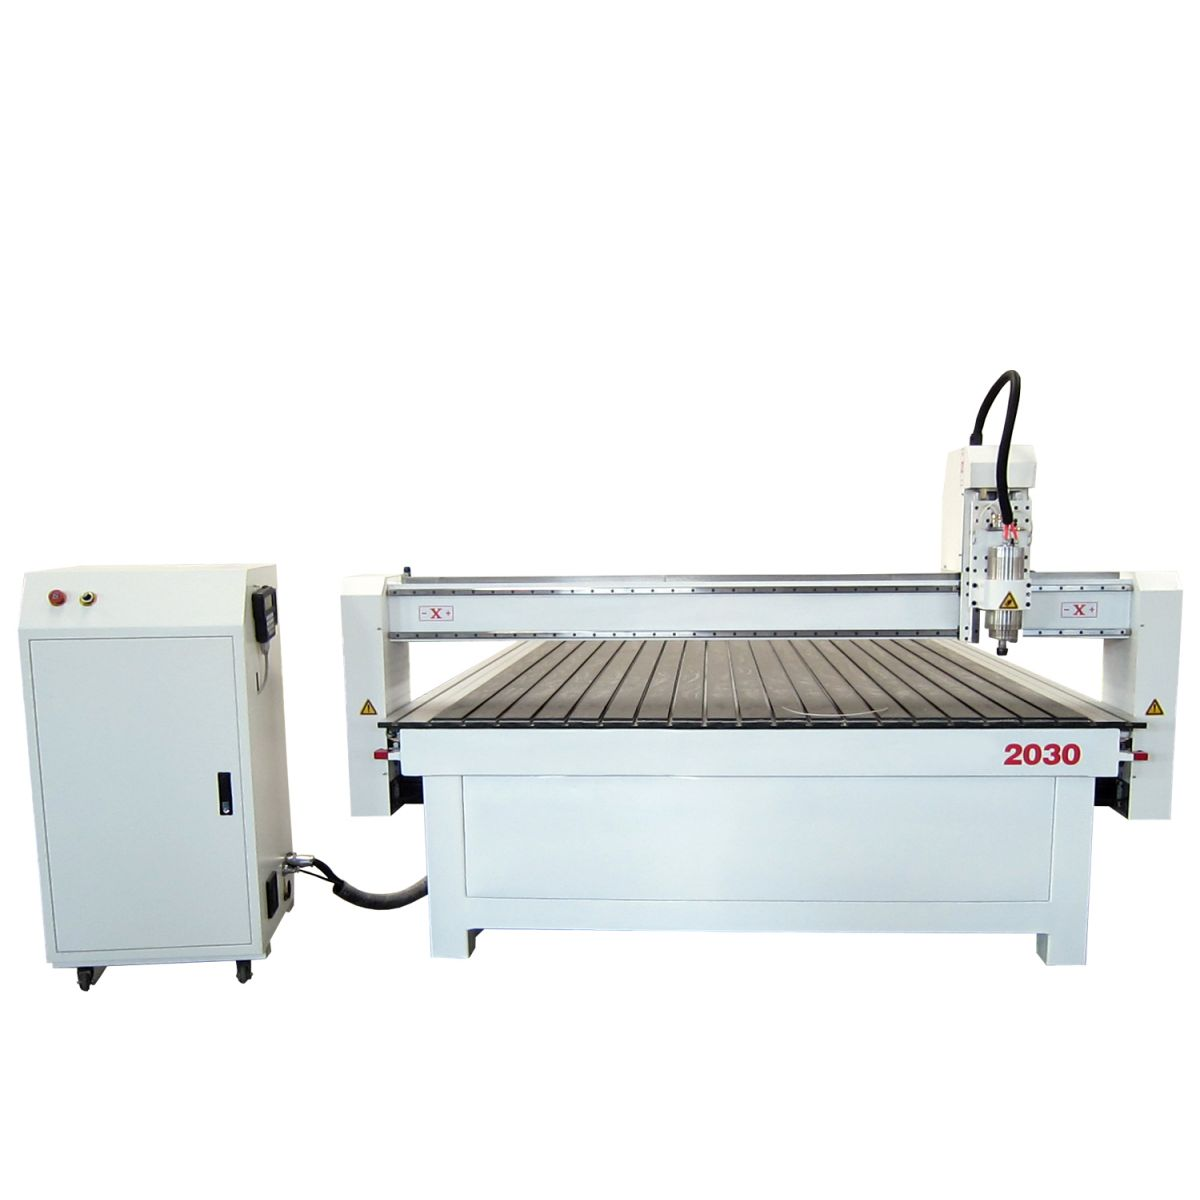 Router Cnc 2030 2000 X 3000 - DSP (220V)